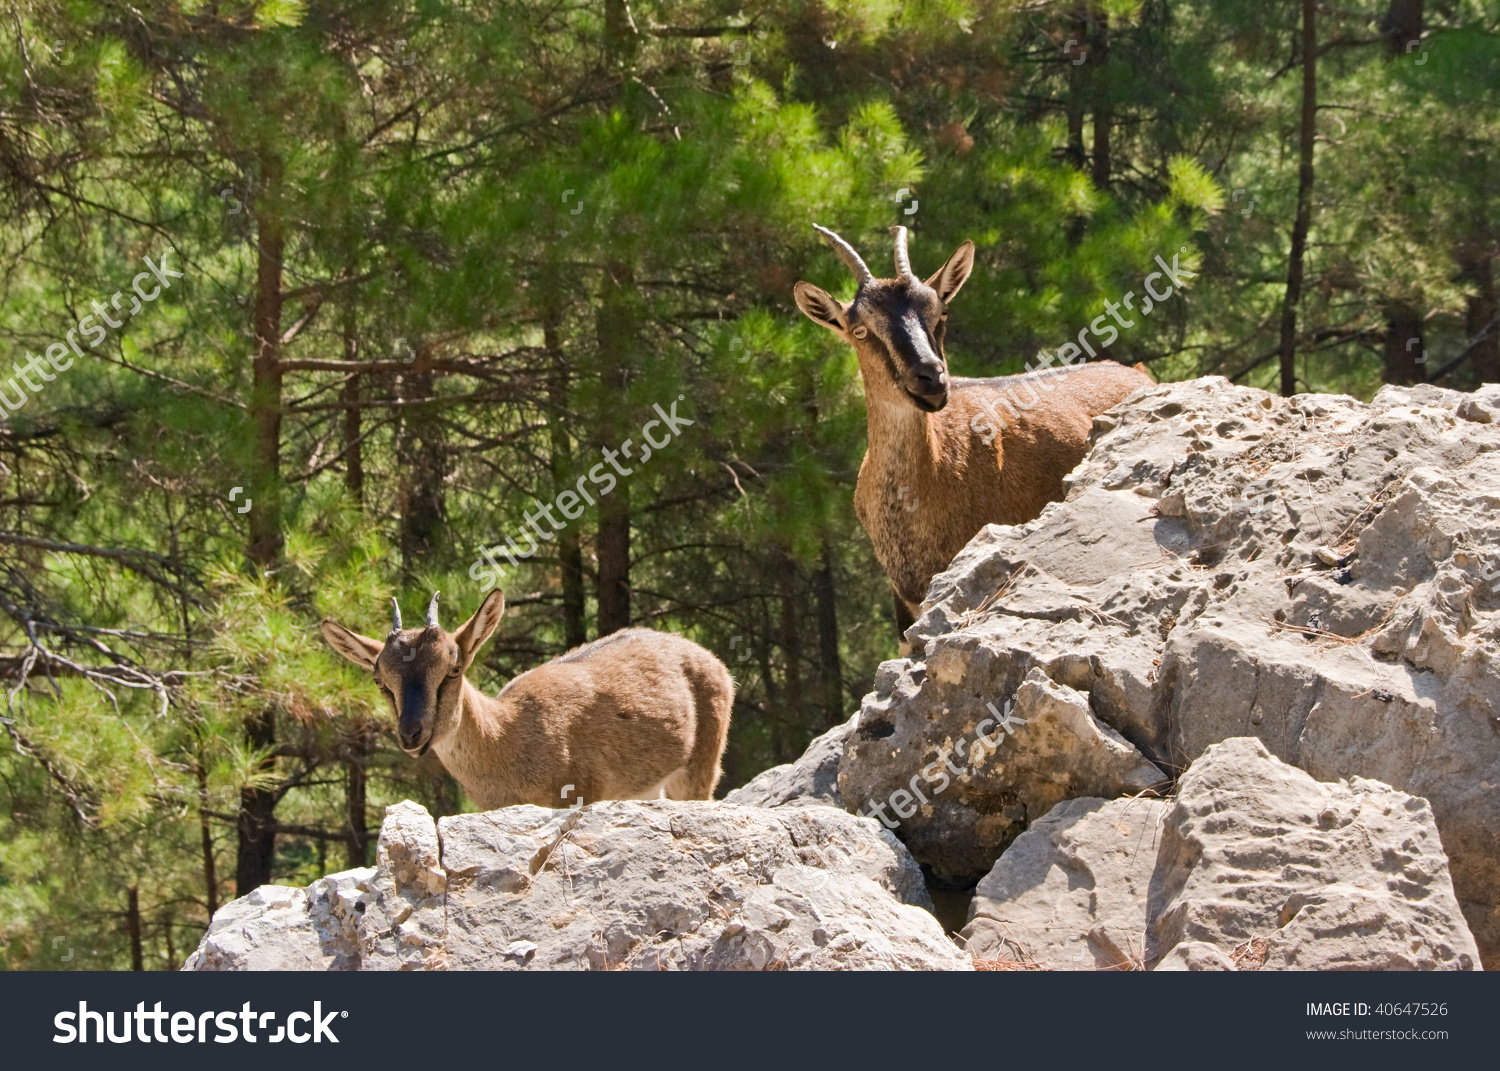 Wild Goats Krikri Samaria Gorge Crete Stock Photo 40647526.